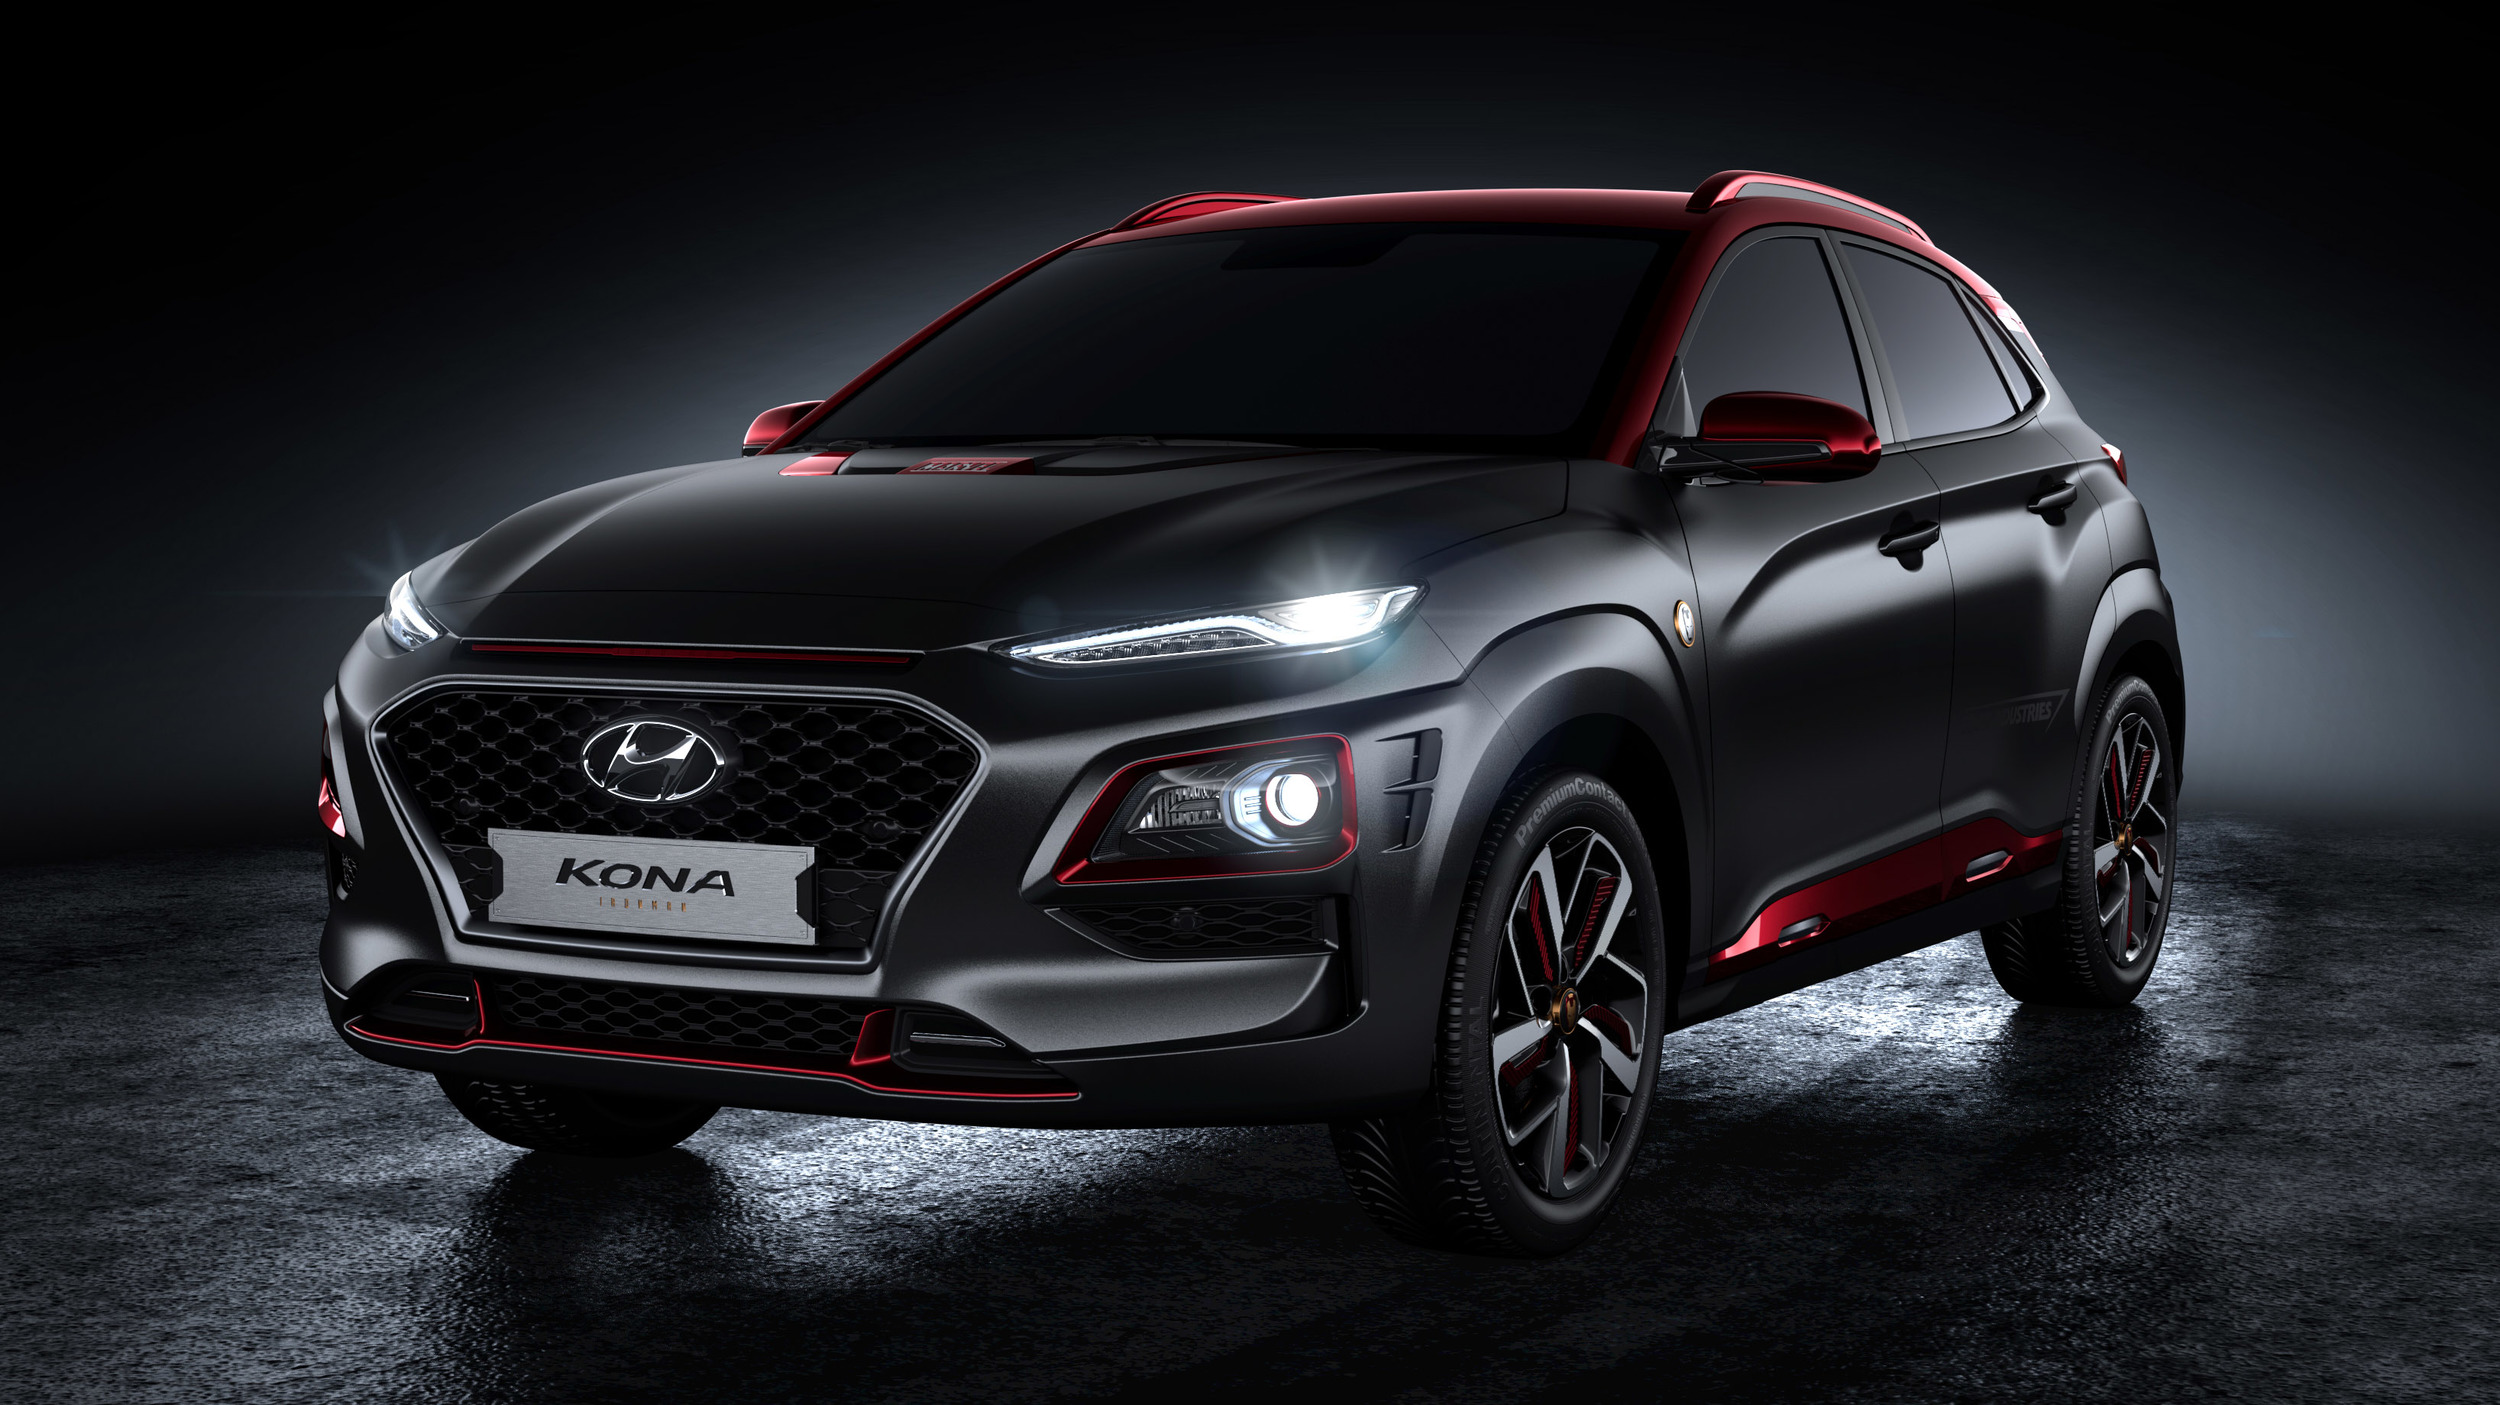 Hyundai Kona Iron Man Edition (2)